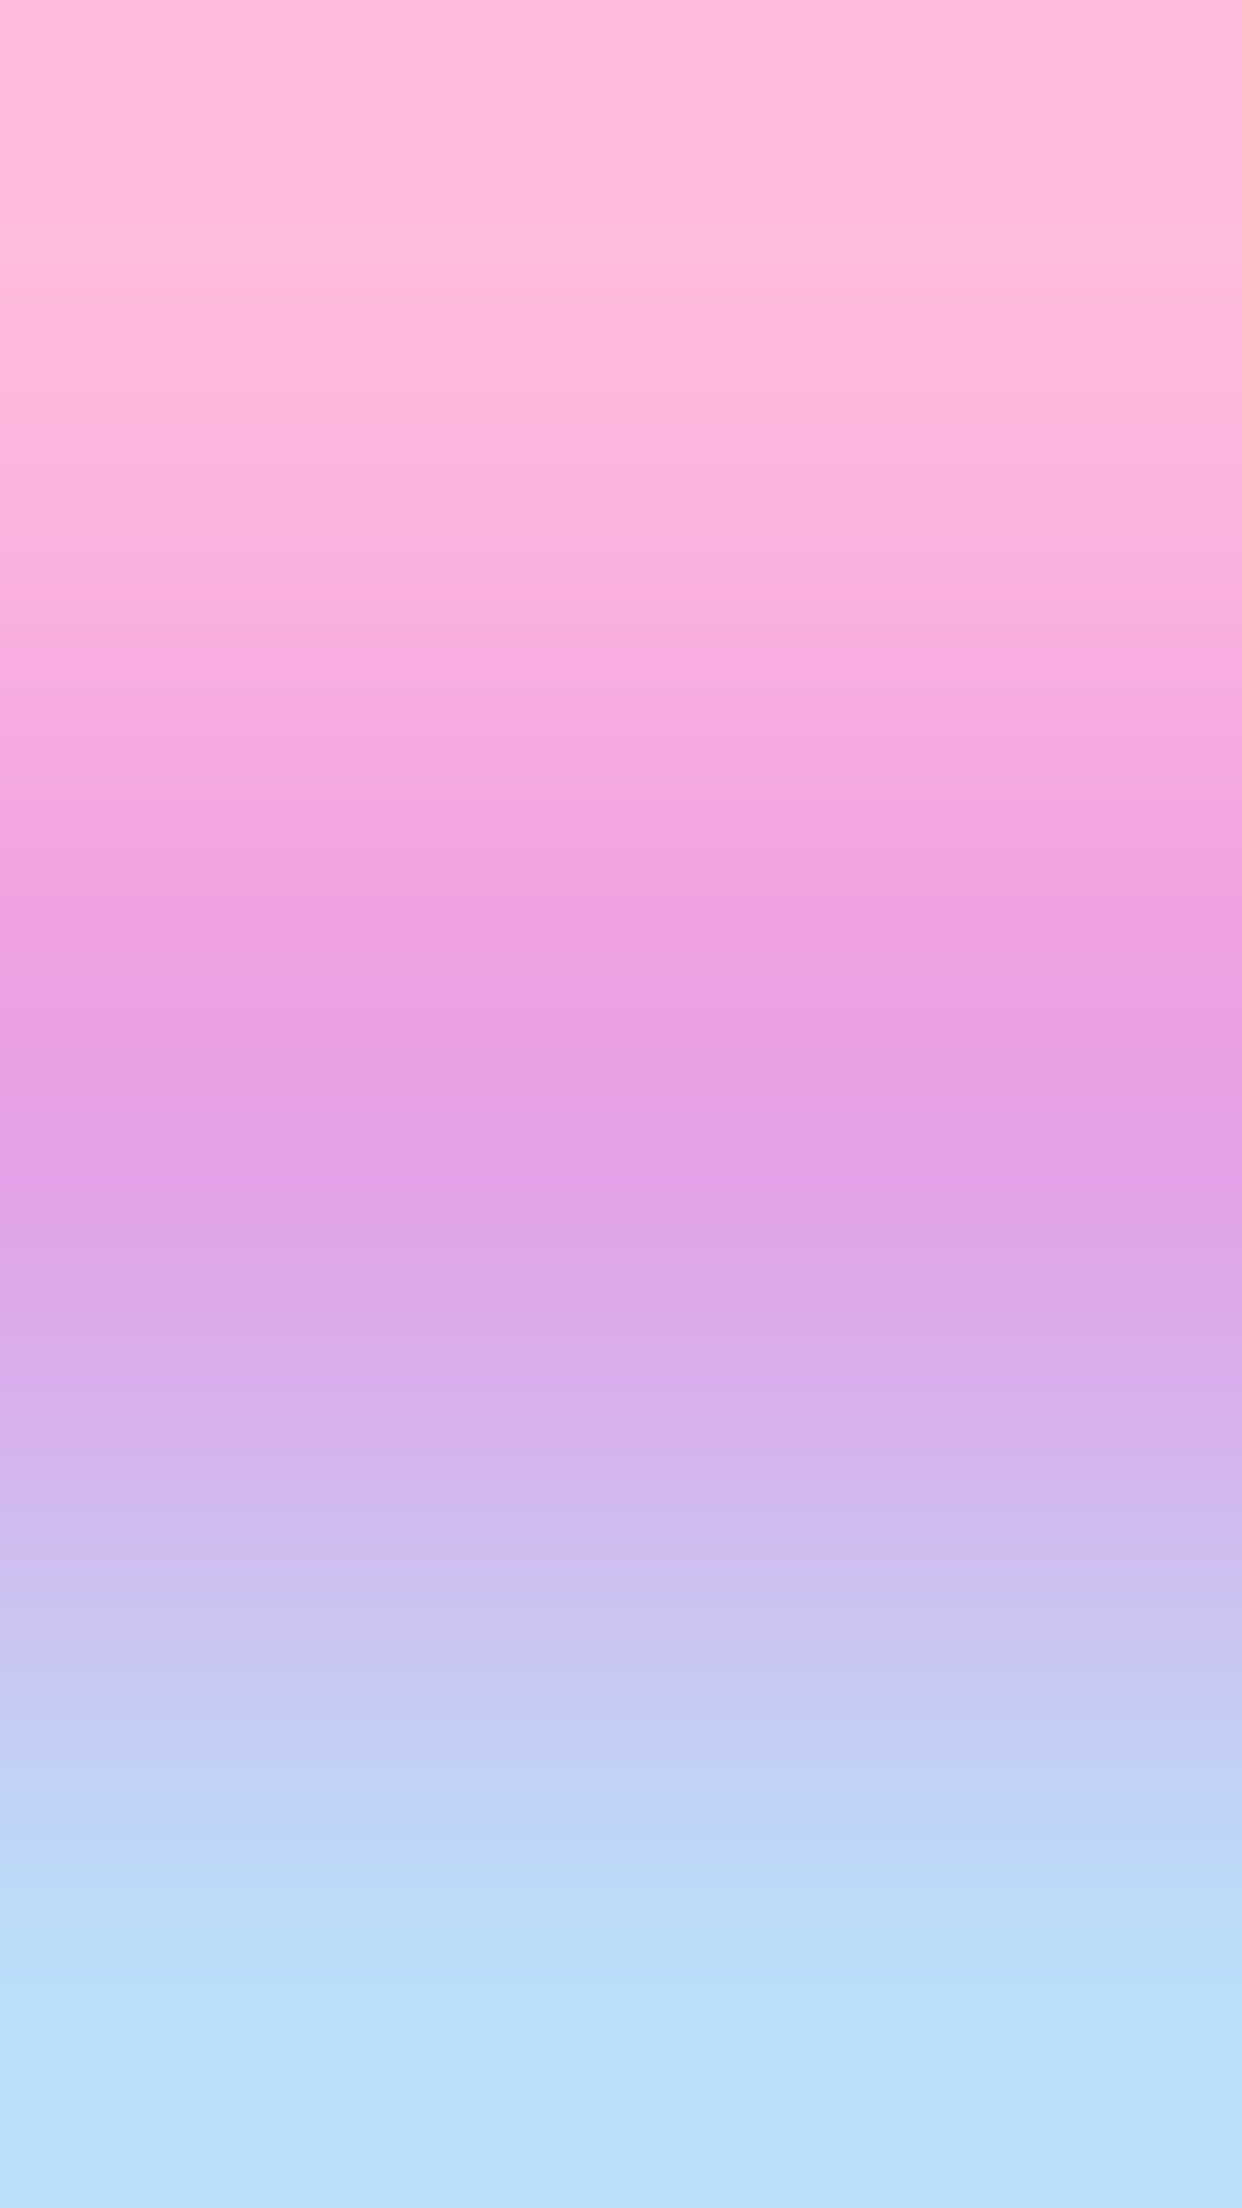 Purple Ombre Background Tumblr: Blue And Pink Ombre Wallpaper (60+ Images